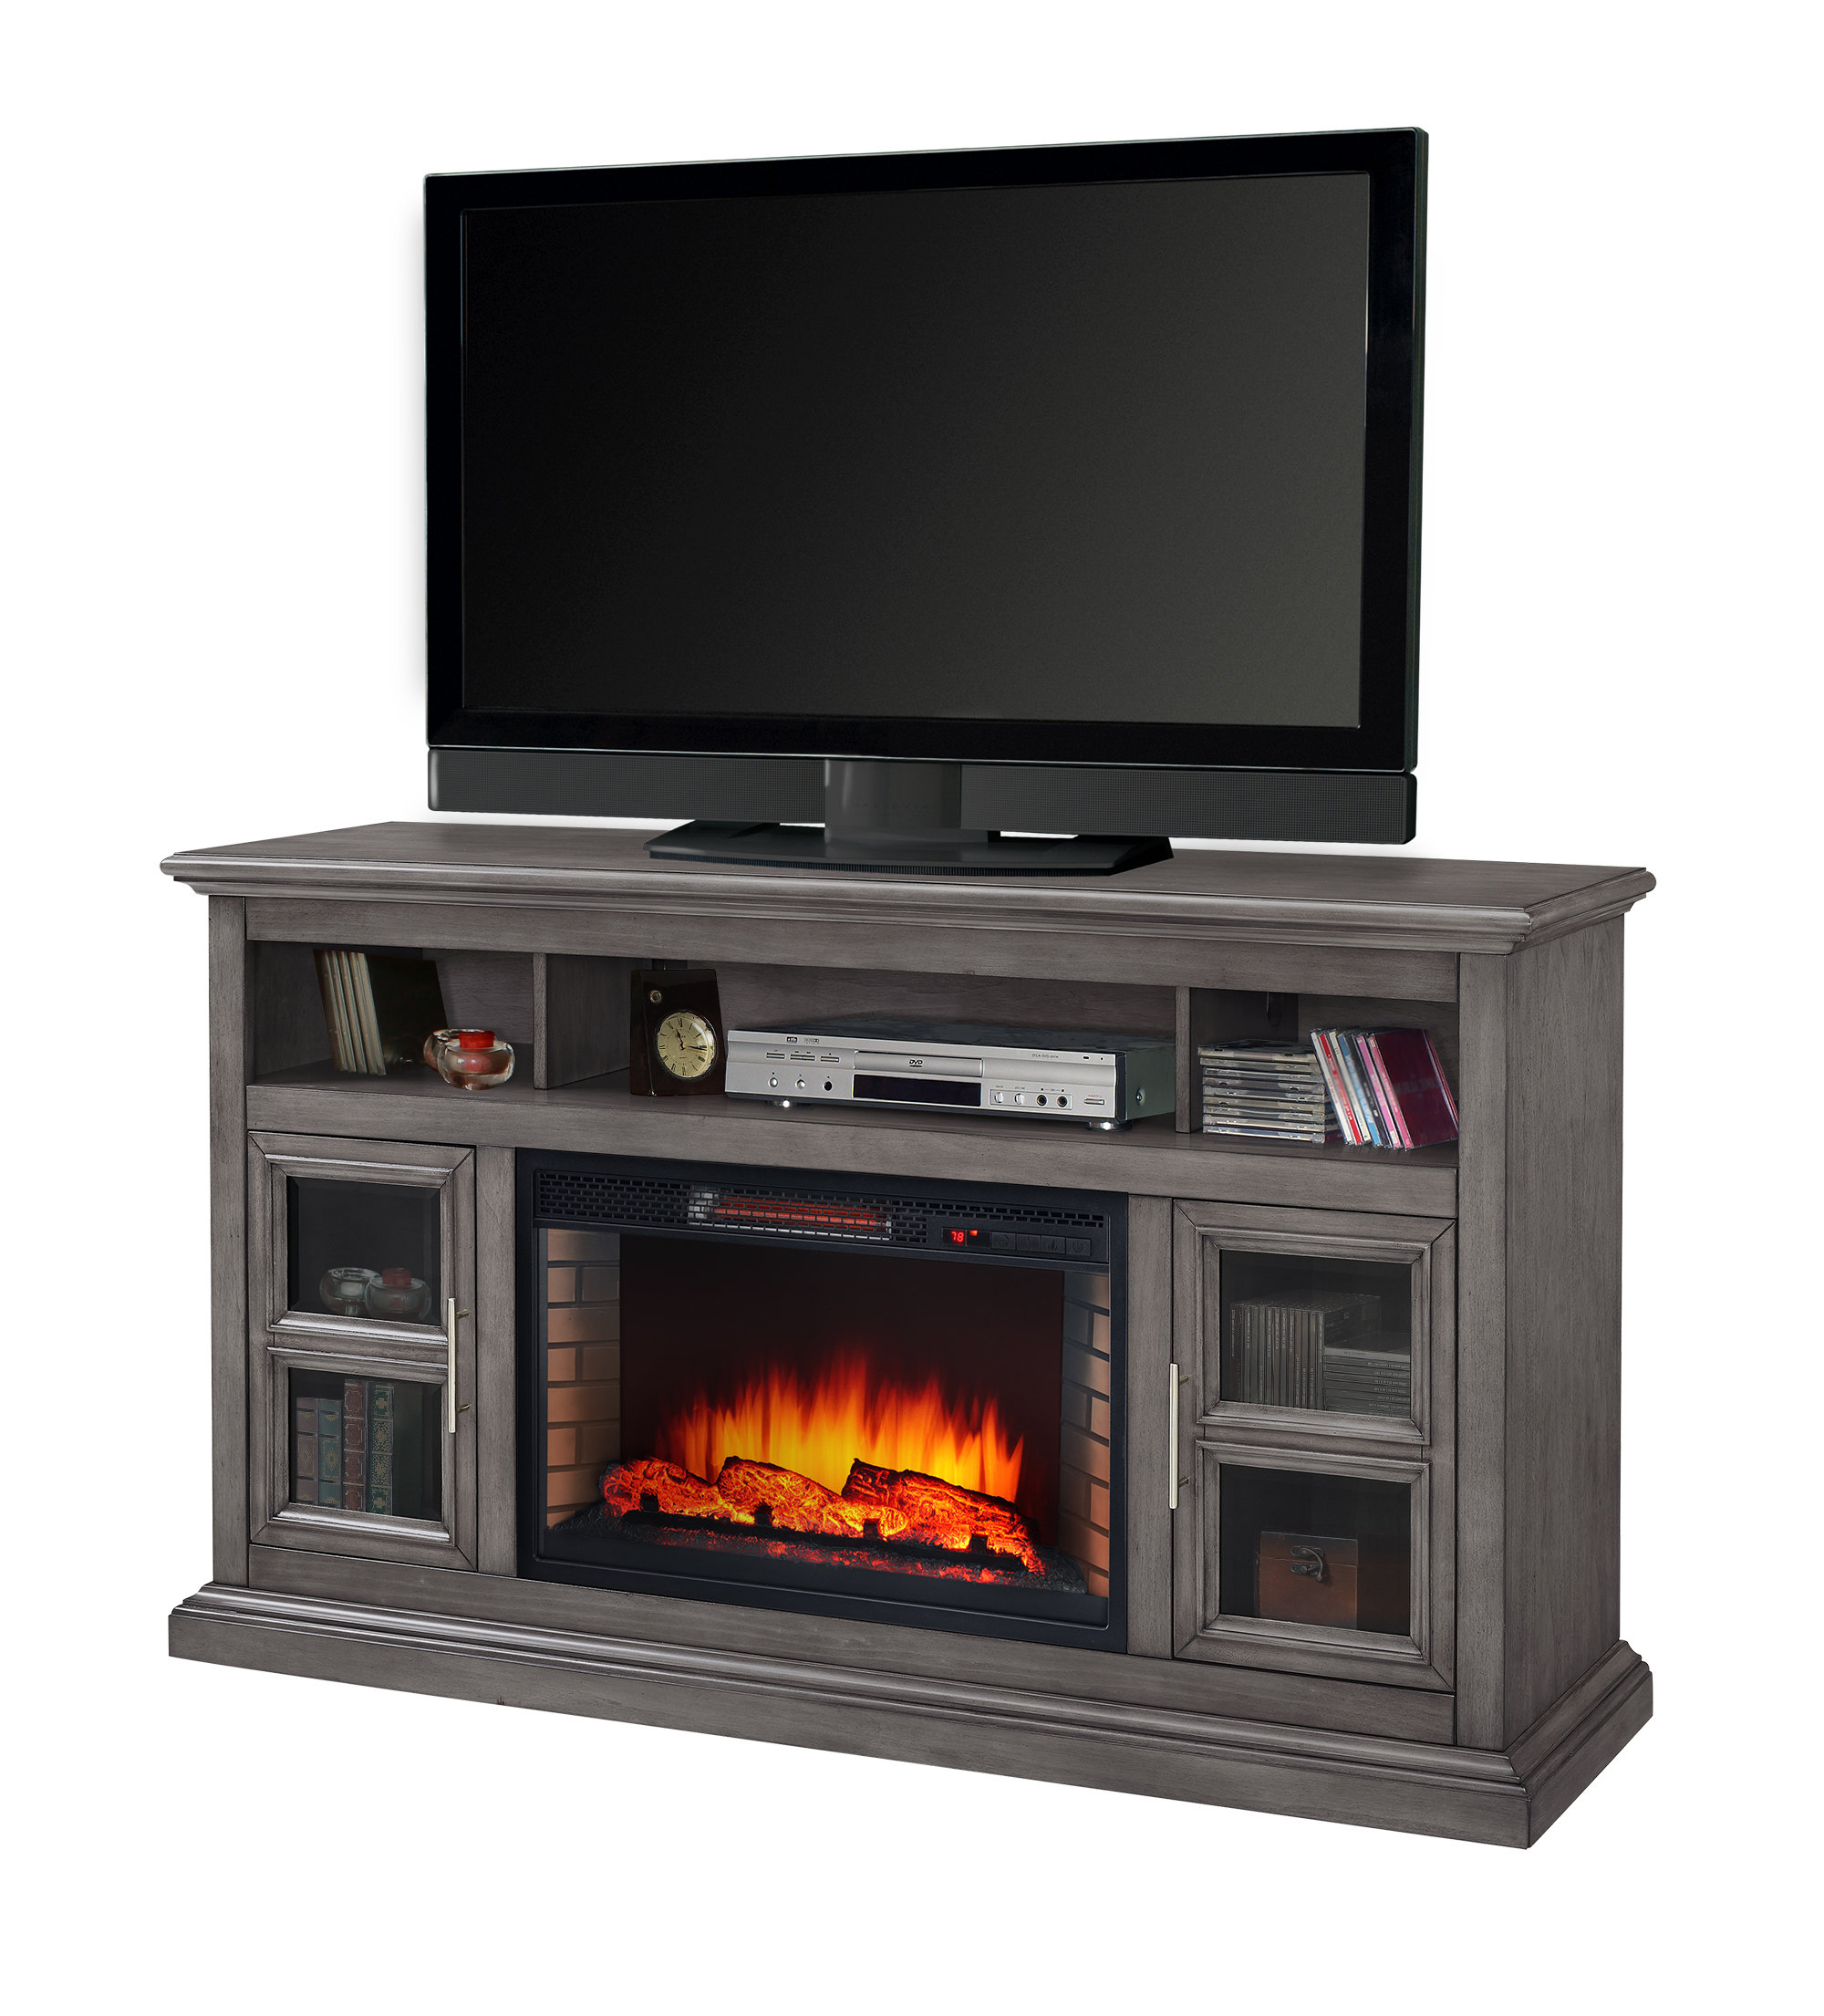 60-69 Inch Tv Stand Fireplaces You'll Love | Wayfair with regard to Caden 63 Inch Tv Stands (Image 3 of 30)